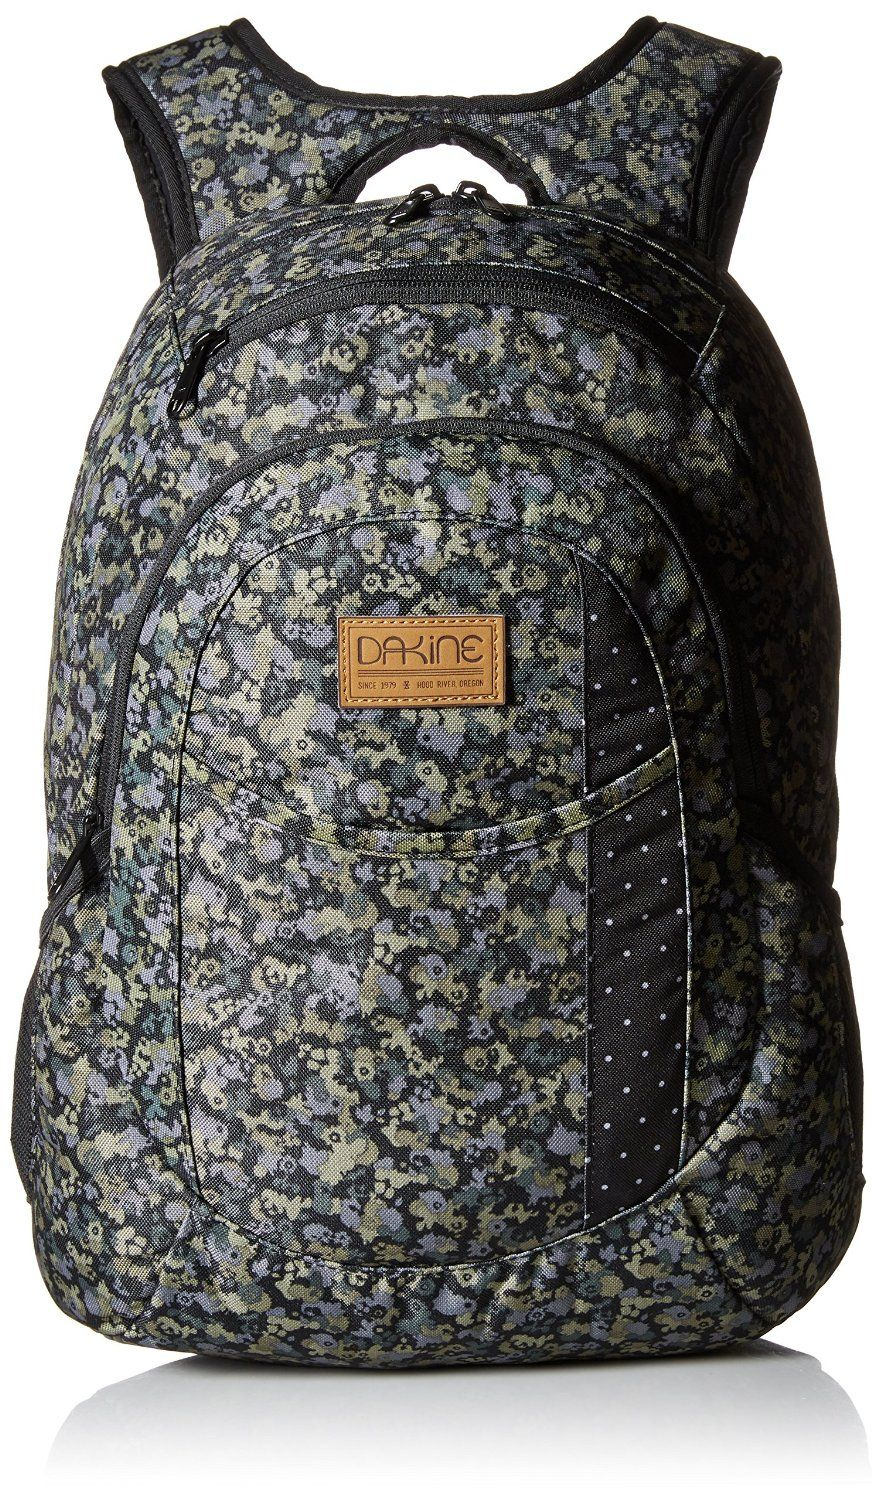 Amazon.com   Dakine Garden Laptop Backpack   Sports   Outdoors ... ed36d4aaecece